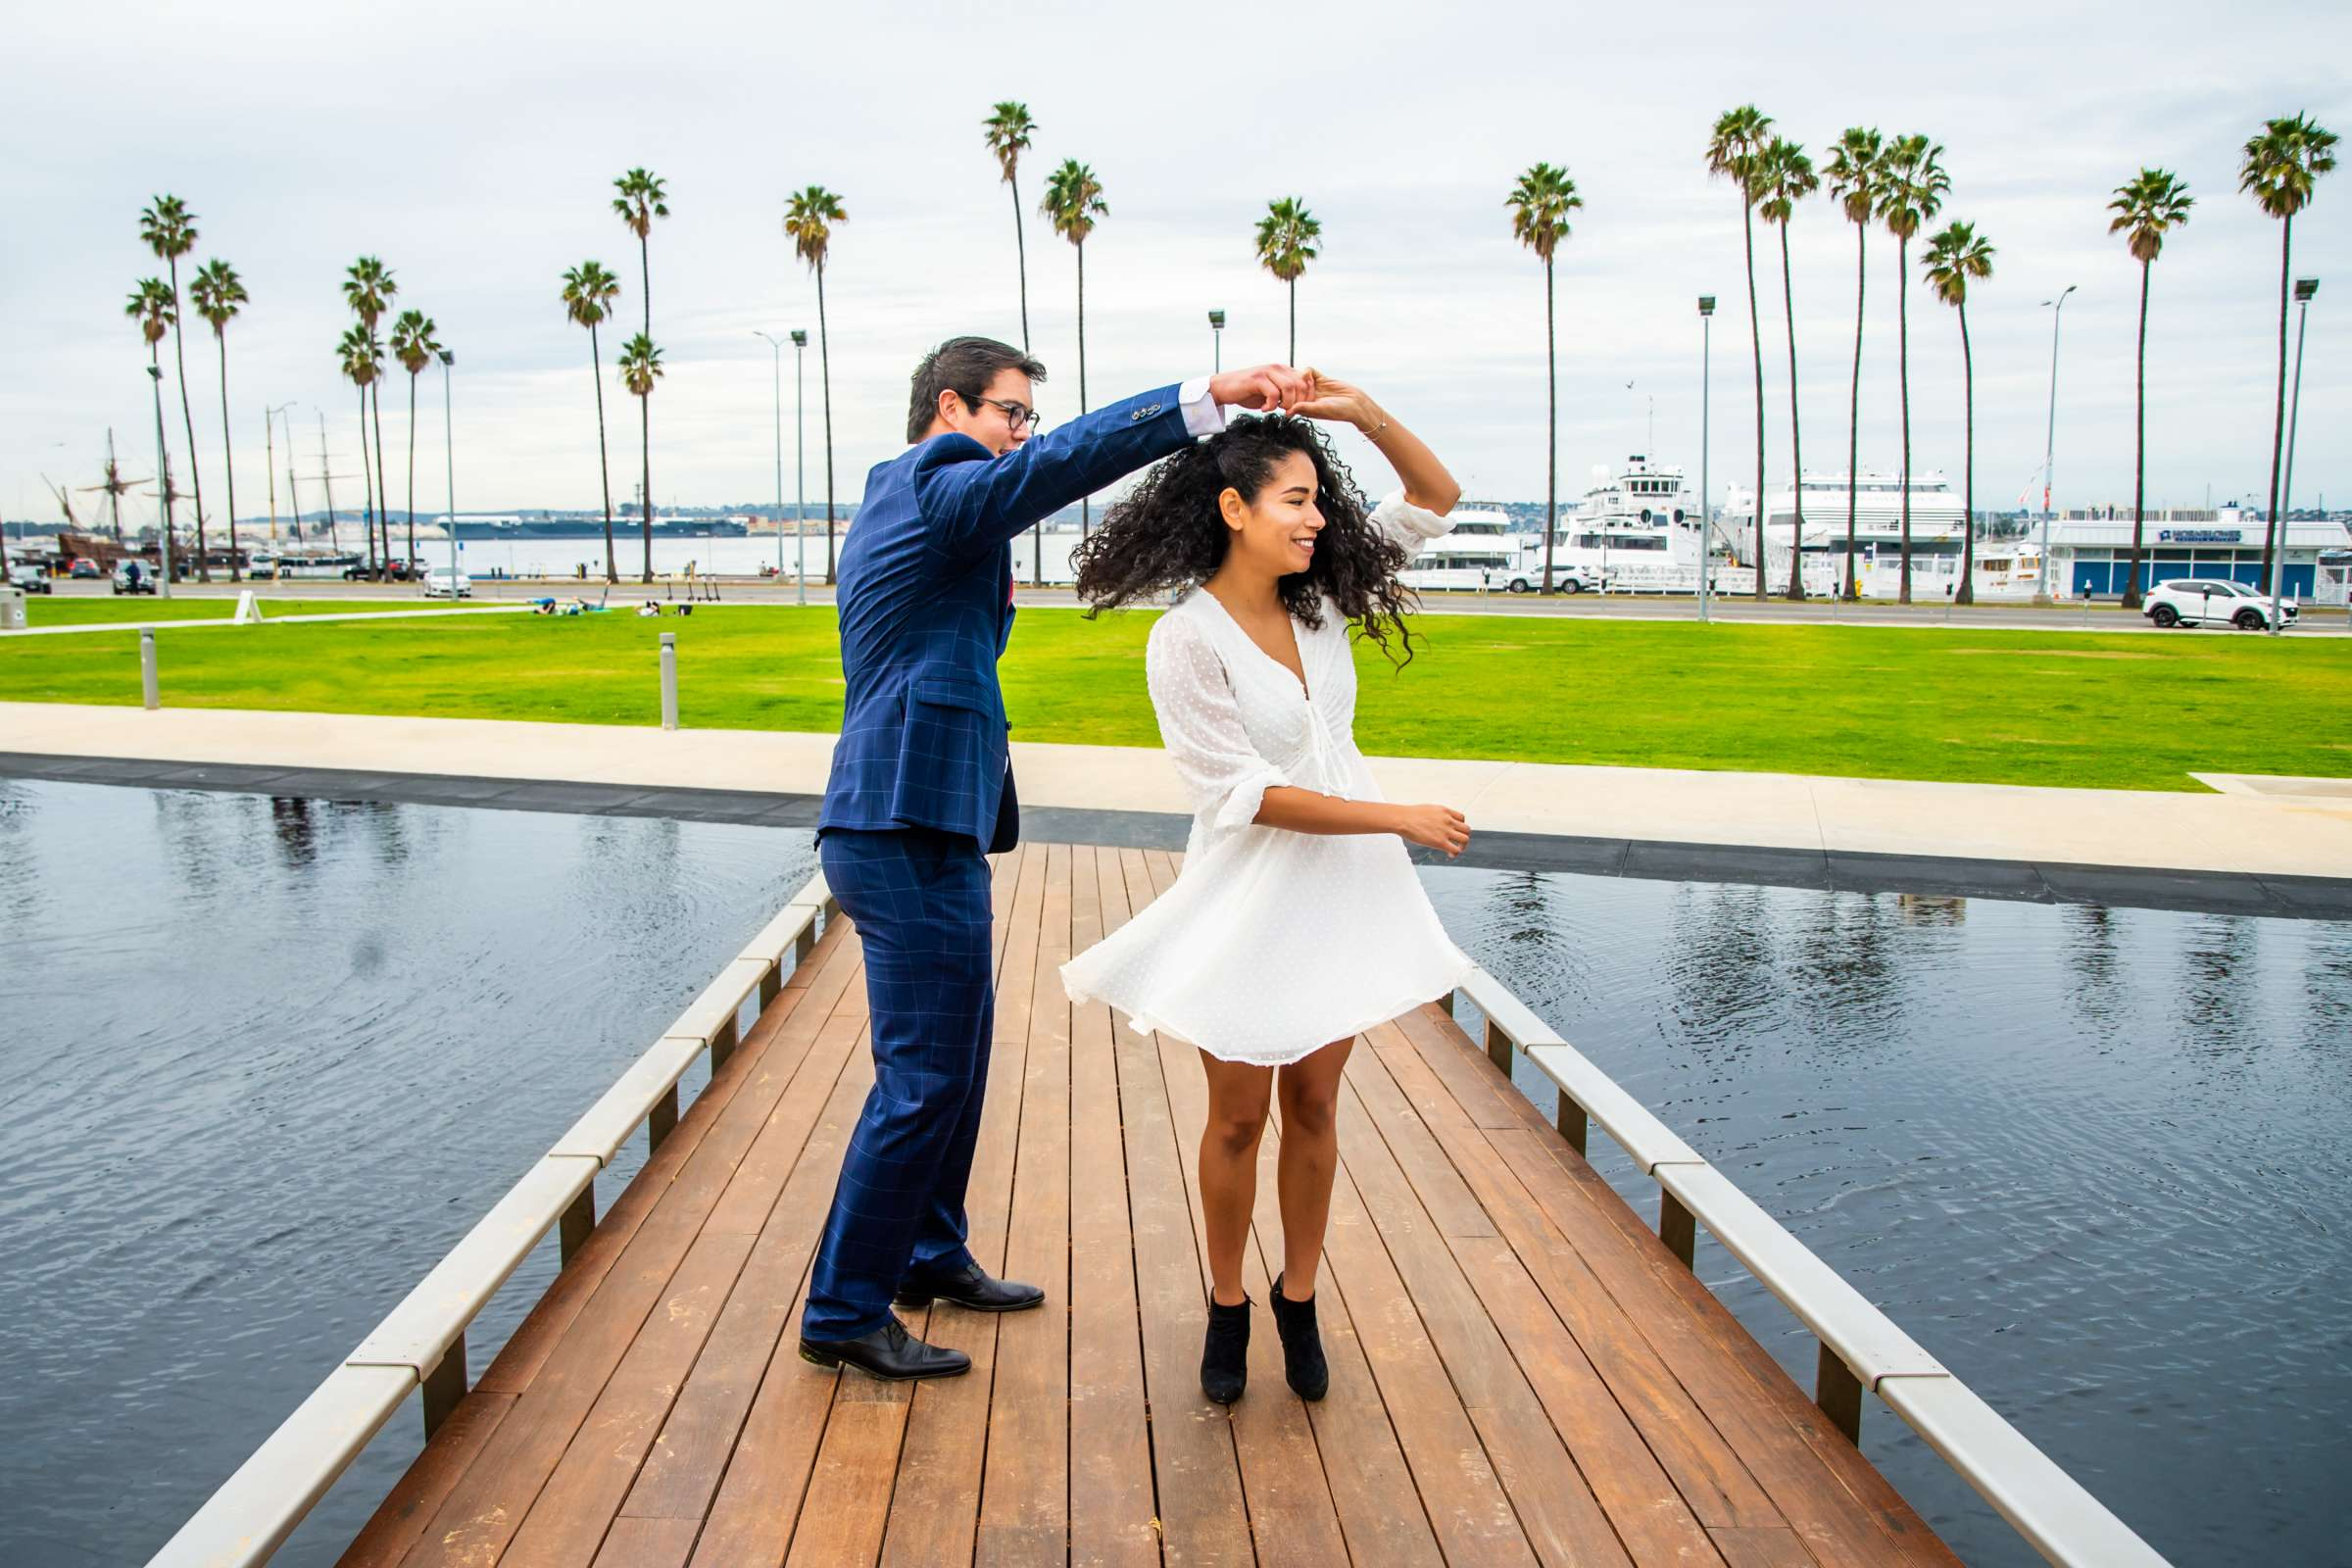 San Diego Courthouse Event, Gabriela and Peter Wedding Event Photo #622825 by True Photography